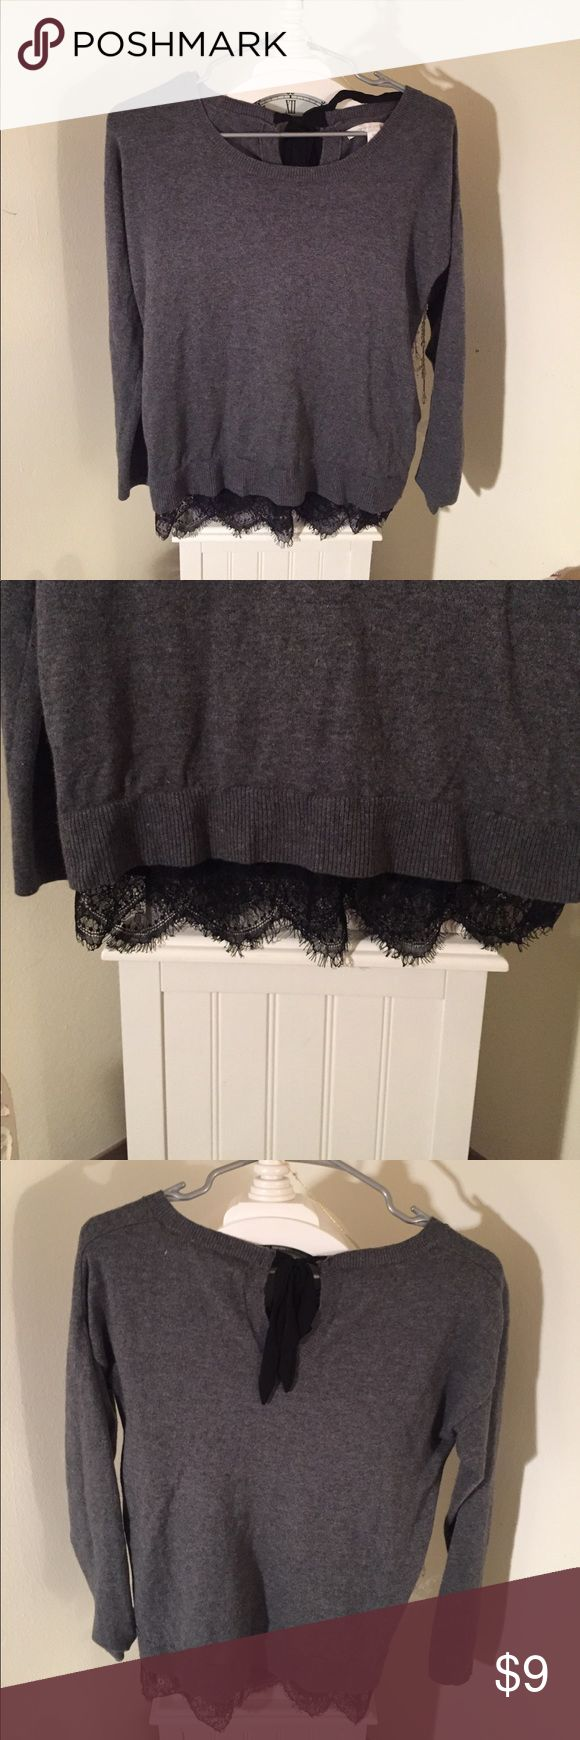 Laura Conrad sweater with black lace Great condition. Lauren Conrad sweater with bottom lace trim. Tie at top of neck in back. Size xs LC Lauren Conrad Sweaters Crew & Scoop Necks